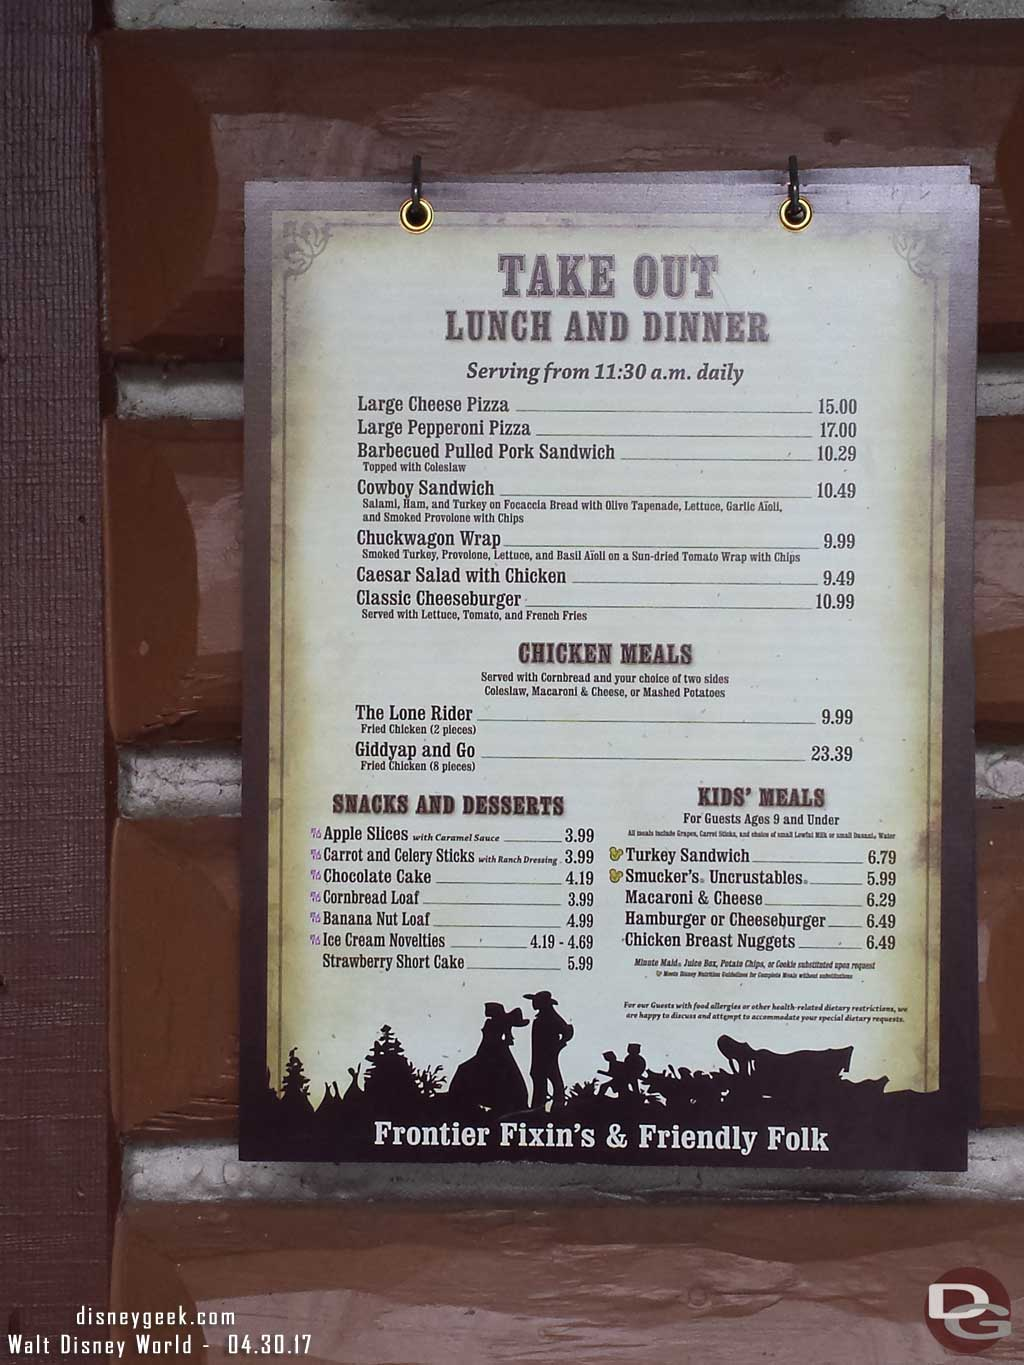 The Take Out Menu